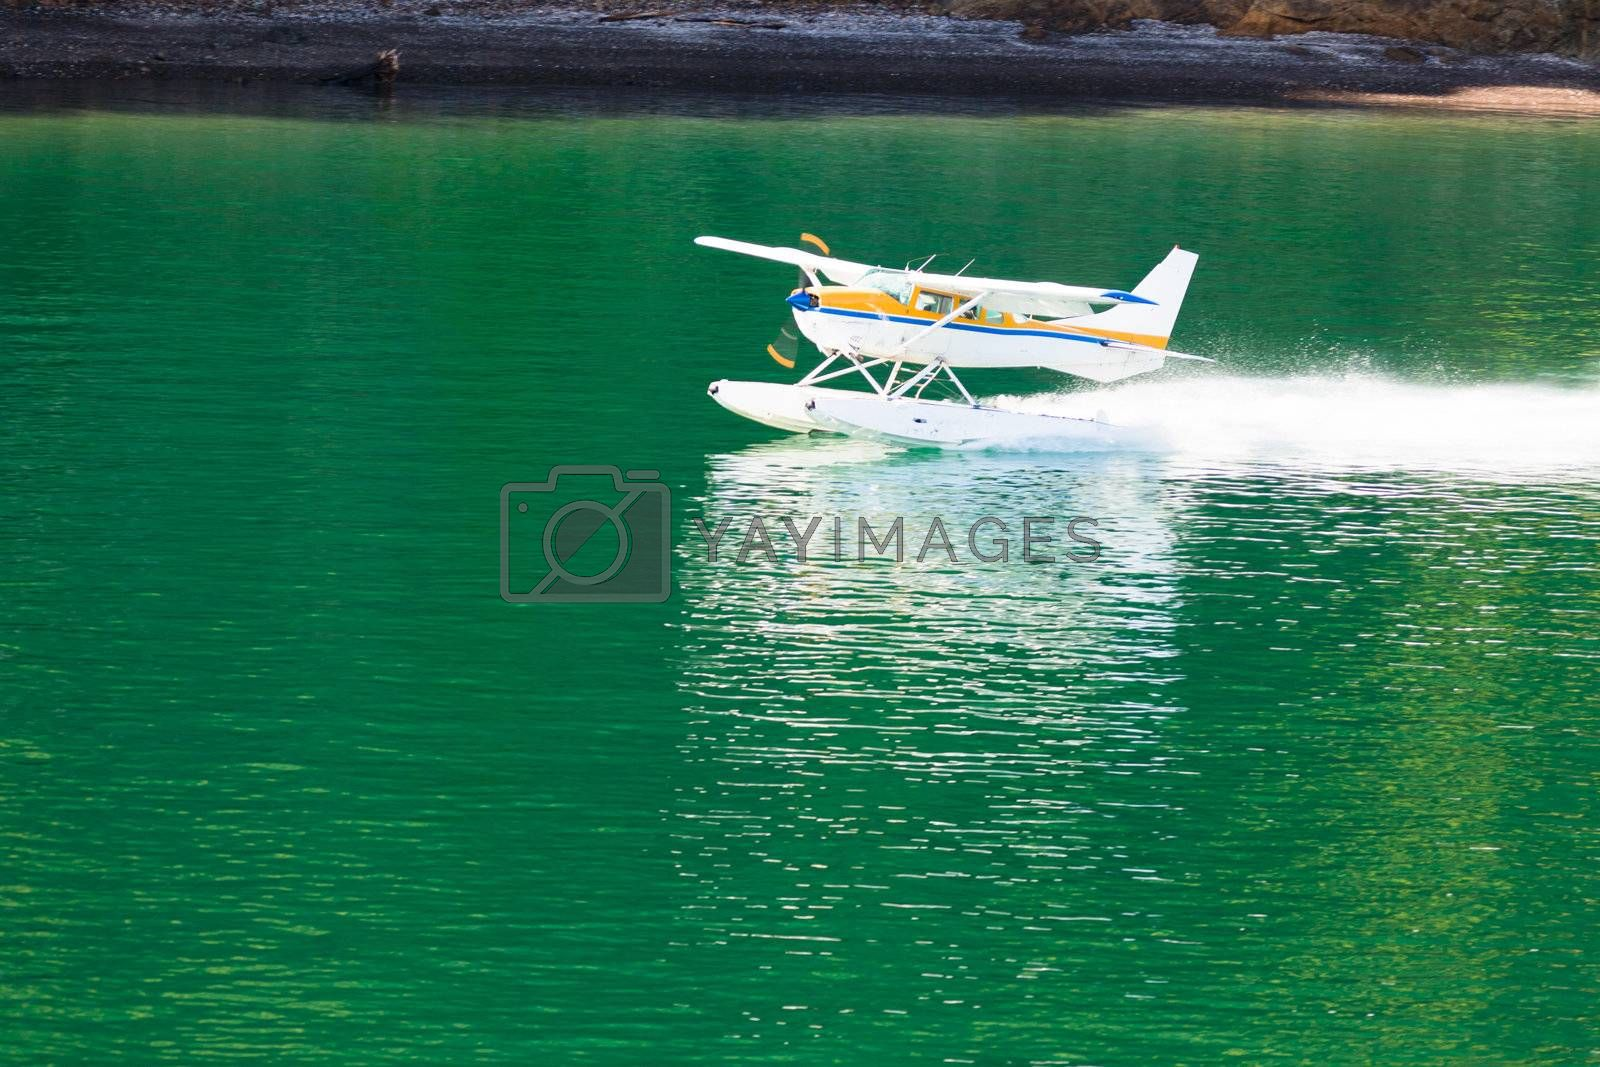 Small propeller float-plane or hydroplane takes off across flat calm water of lake